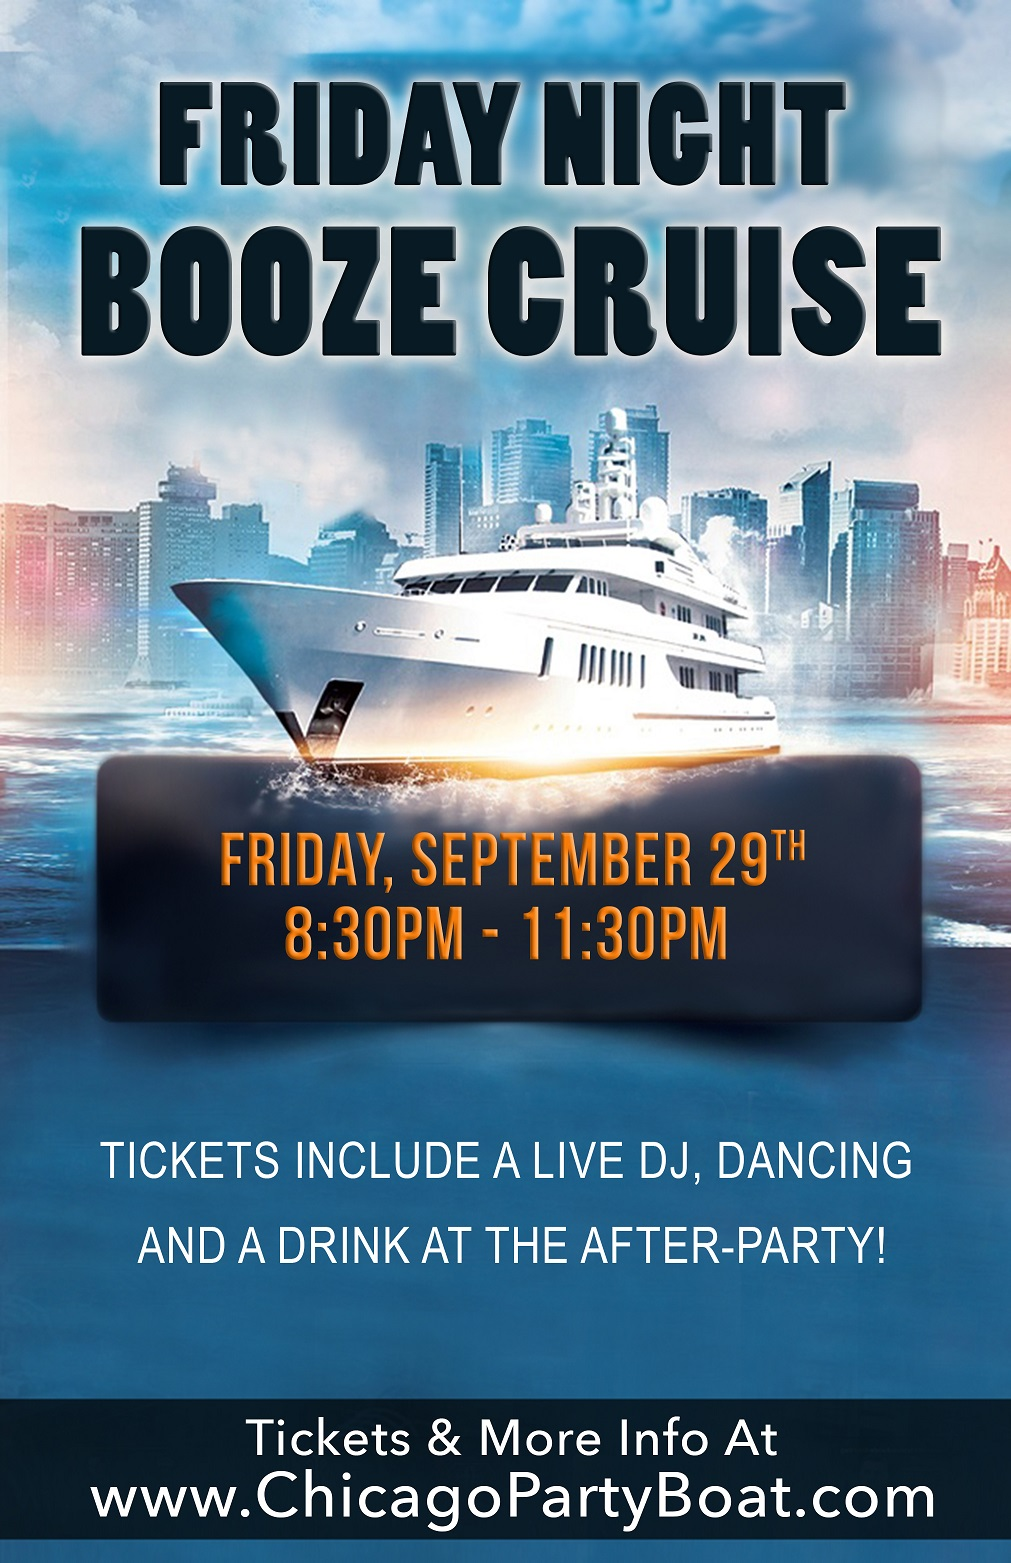 Friday Night Booze Cruise on Lake Michigan! Tickets include a Live DJ, Dancing, and A Drink At The After-Party! Catch breathtaking views of the skyline while aboard the booze cruise!